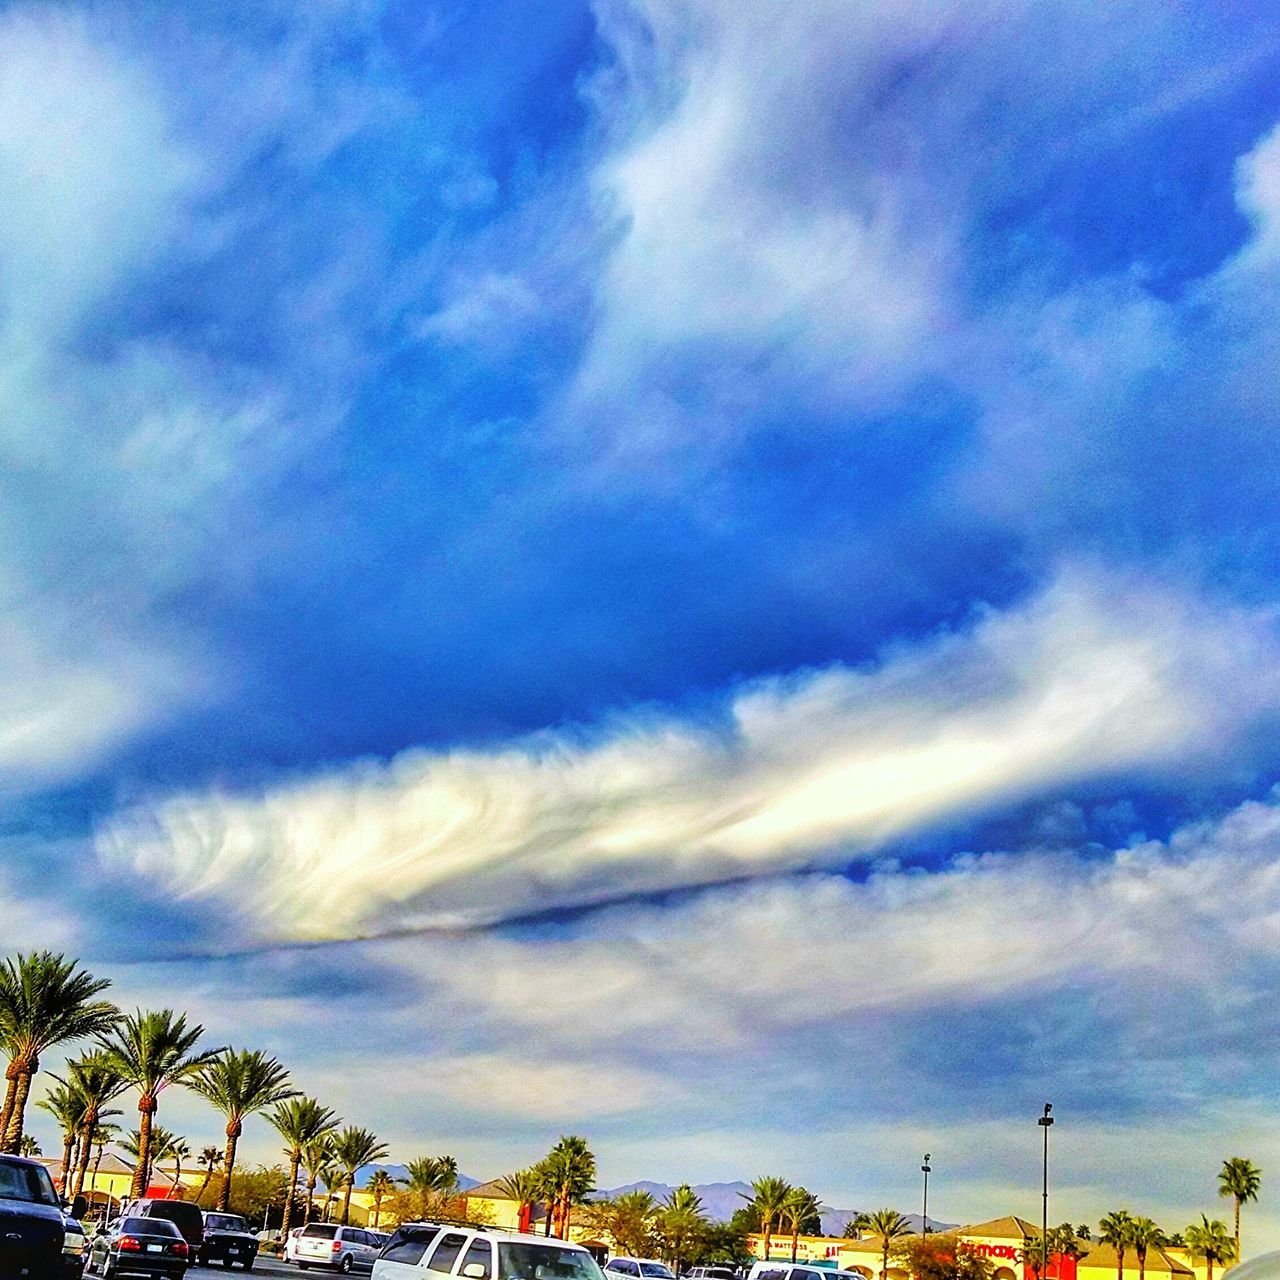 Surf Ocean Waves Sky And Clouds Nature Photography Cloudporn Patterns In Nature Beauty In Nature Earth Las Vegas Clouds And Sky Weather Photography Ocean City View  City Street Cityscapes